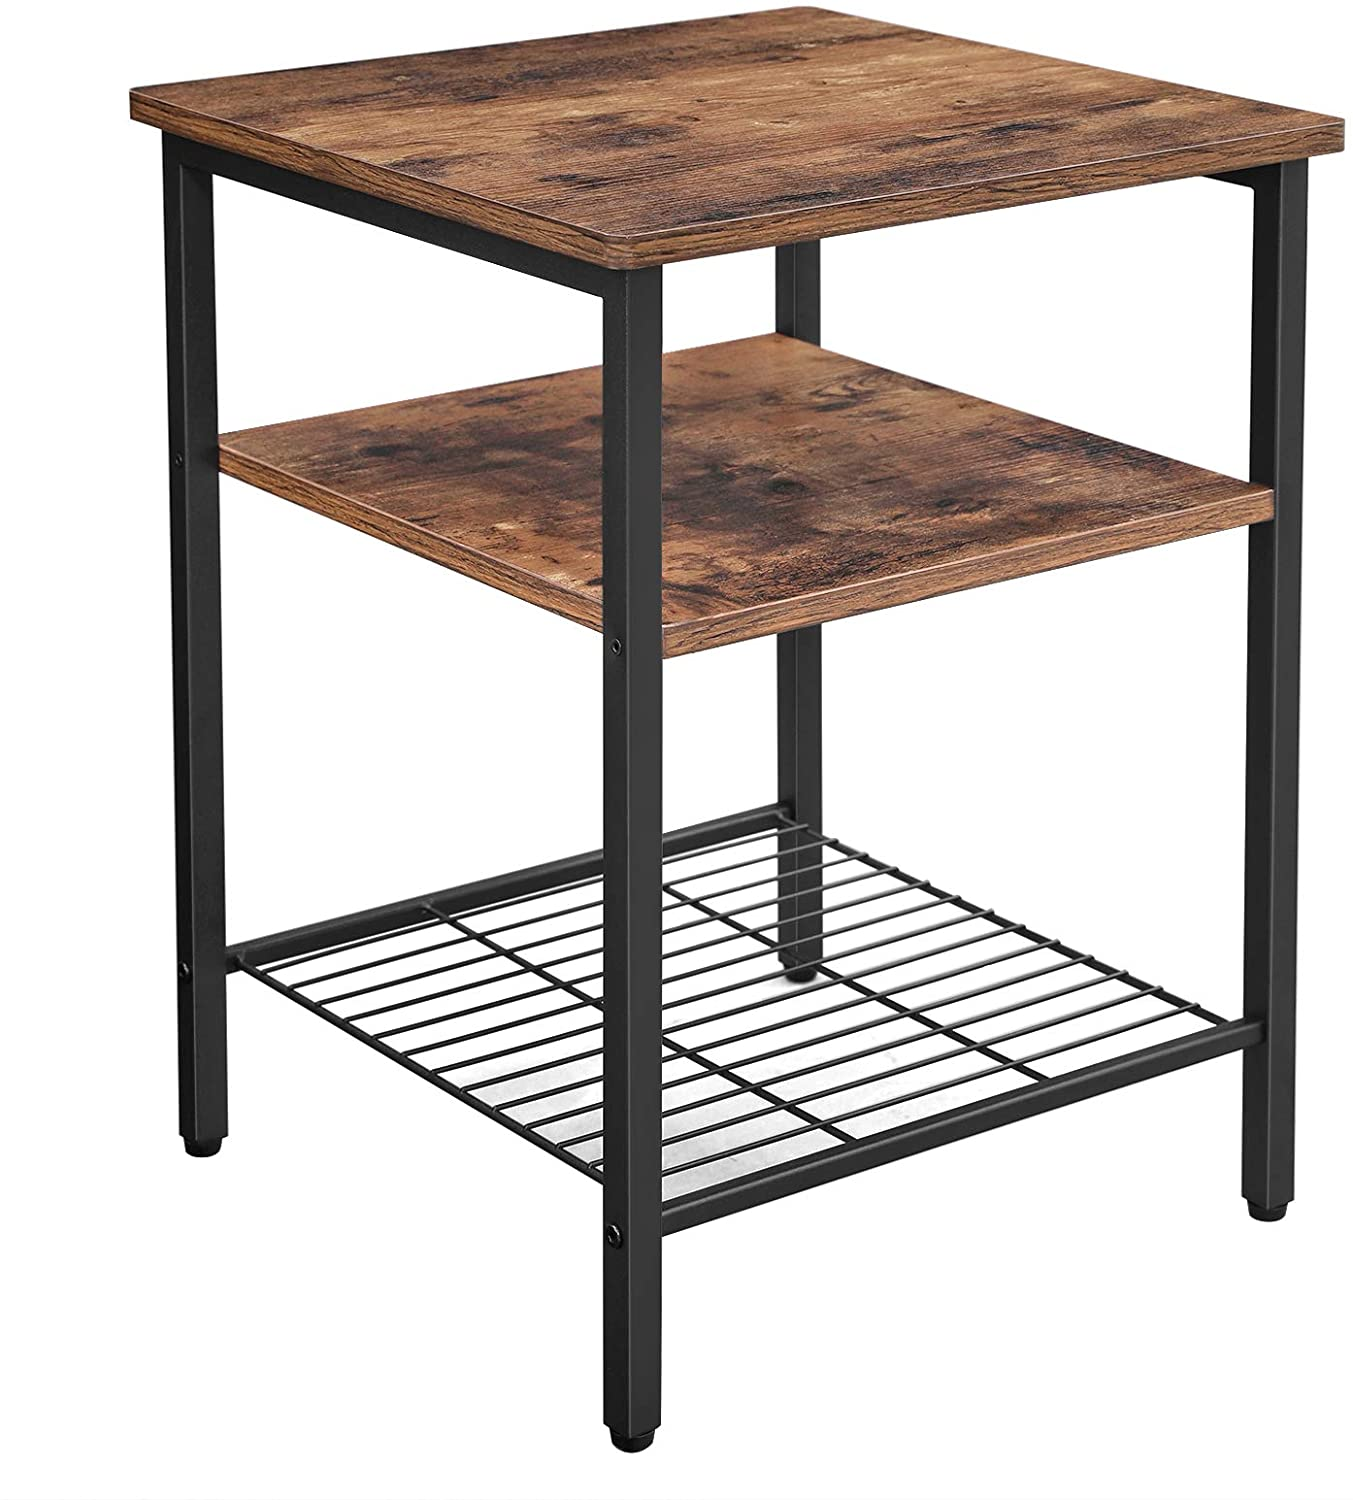 Enjoy fast, free nationwide shipping!  Family owned and operated, HawkinsWoodshop.com is your one stop shop for affordable furniture.  Shop HawkinsWoodshop.com for solid wood & metal modern, traditional, contemporary, industrial, custom, rustic, and farmhouse furniture including our Ryan Industrial Farmhouse Nightstand w/ 3 Shelves.